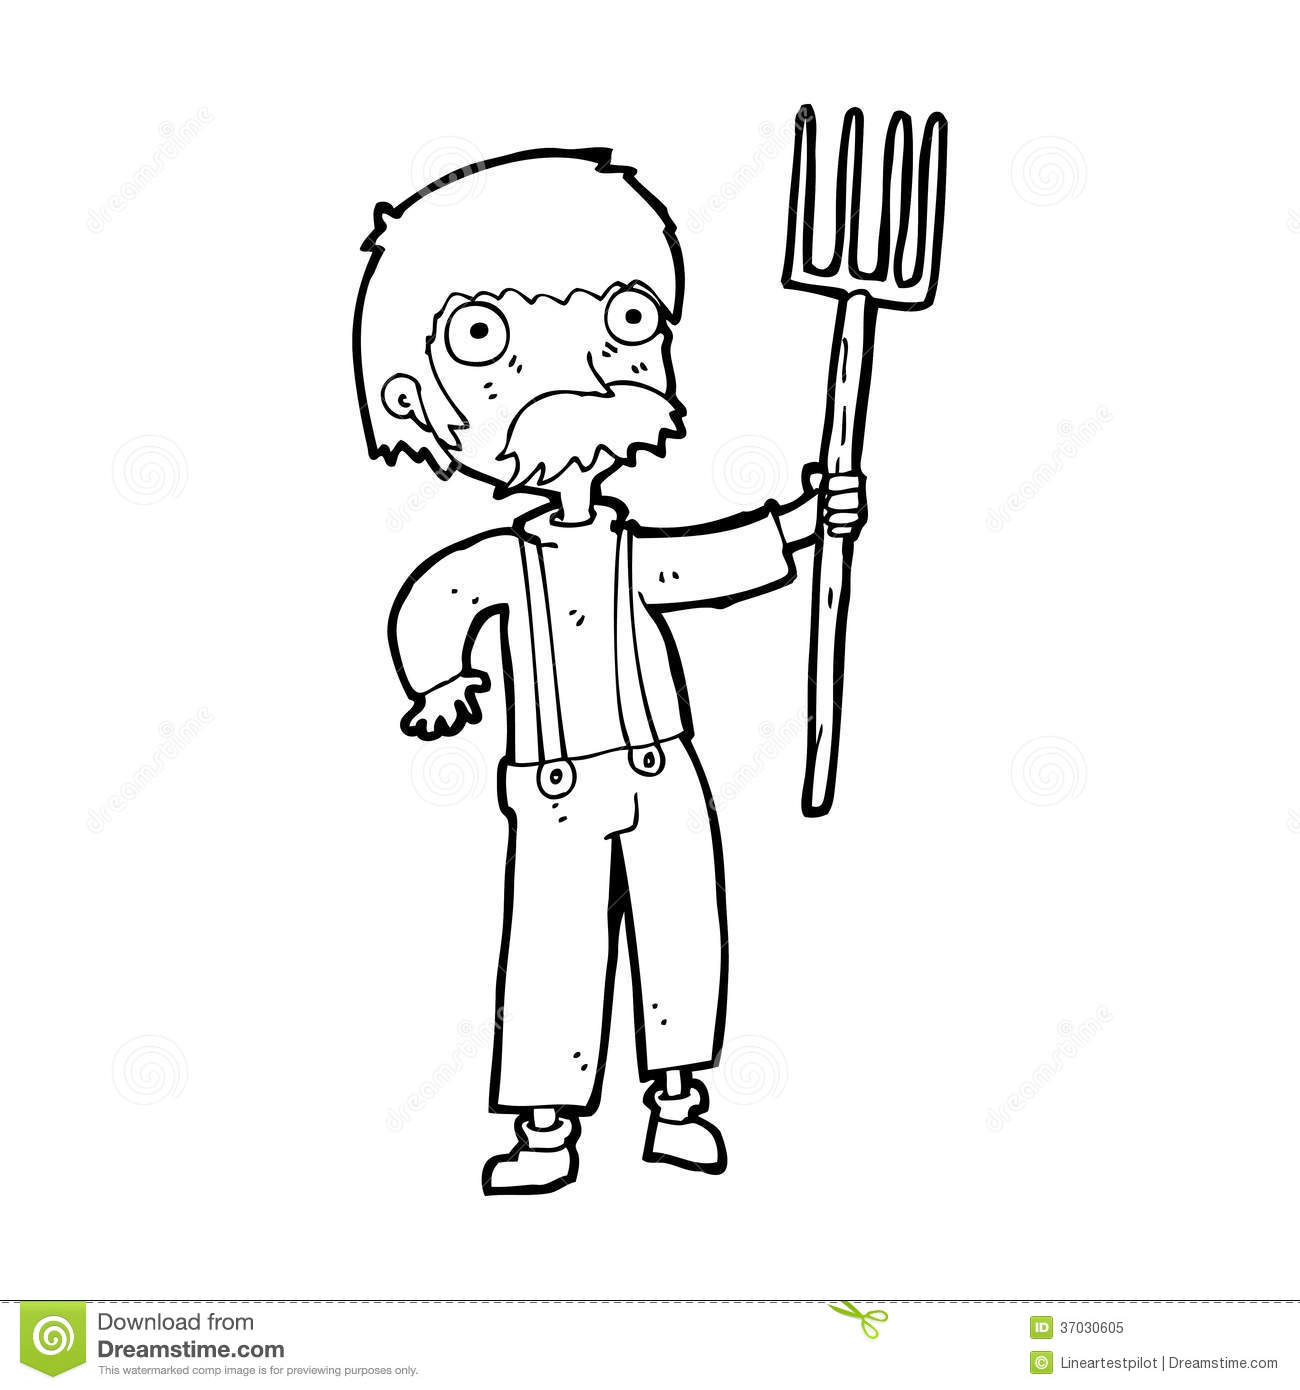 Cartoon Farmer With Pitchfork Royalty Free Stock Photo